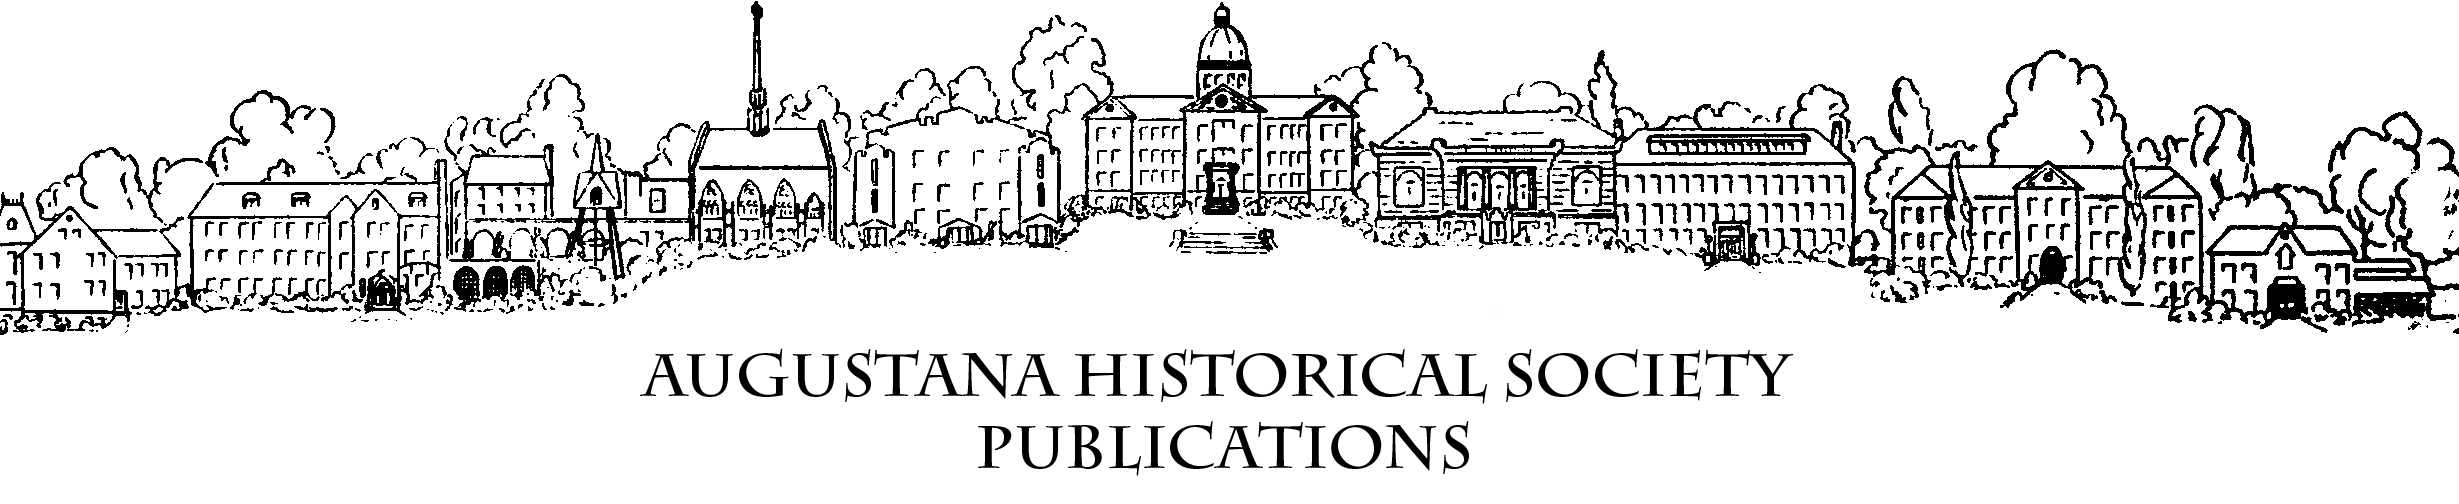 Augustana Historical Society Publications